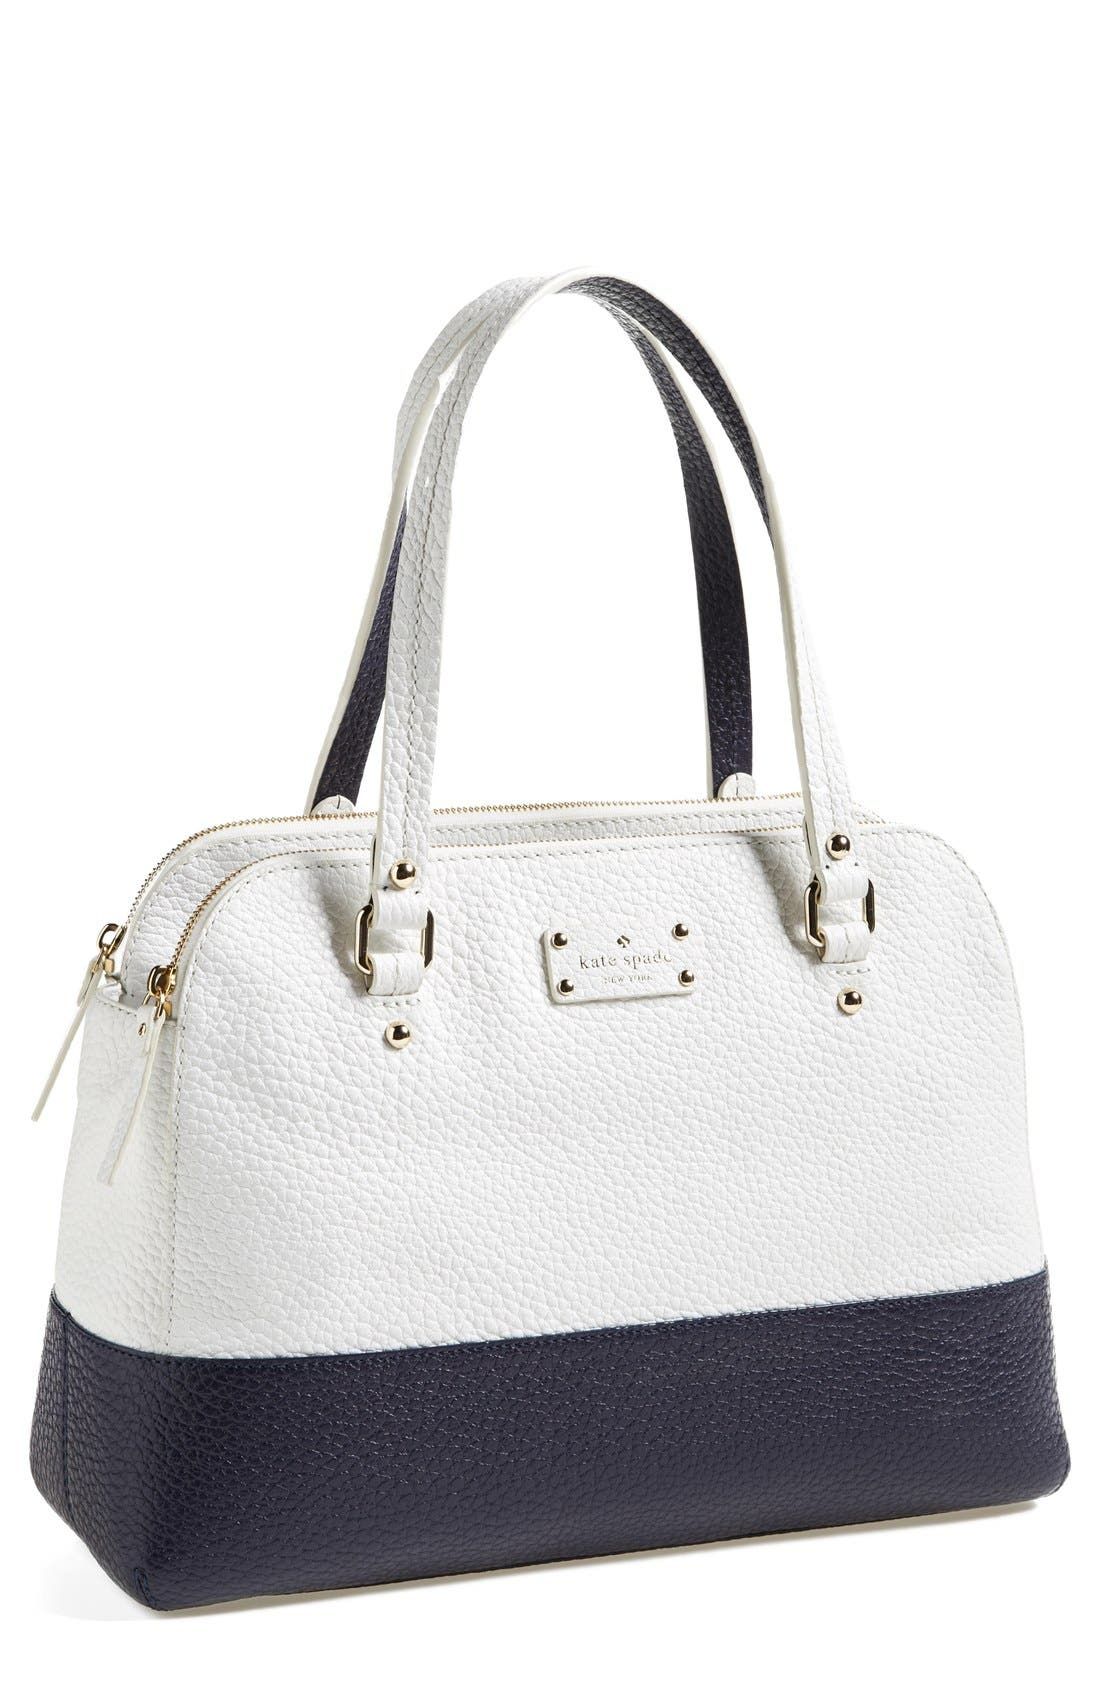 'grove court - lainey' leather tote,                         Main,                         color, Fresh White/ Midnight